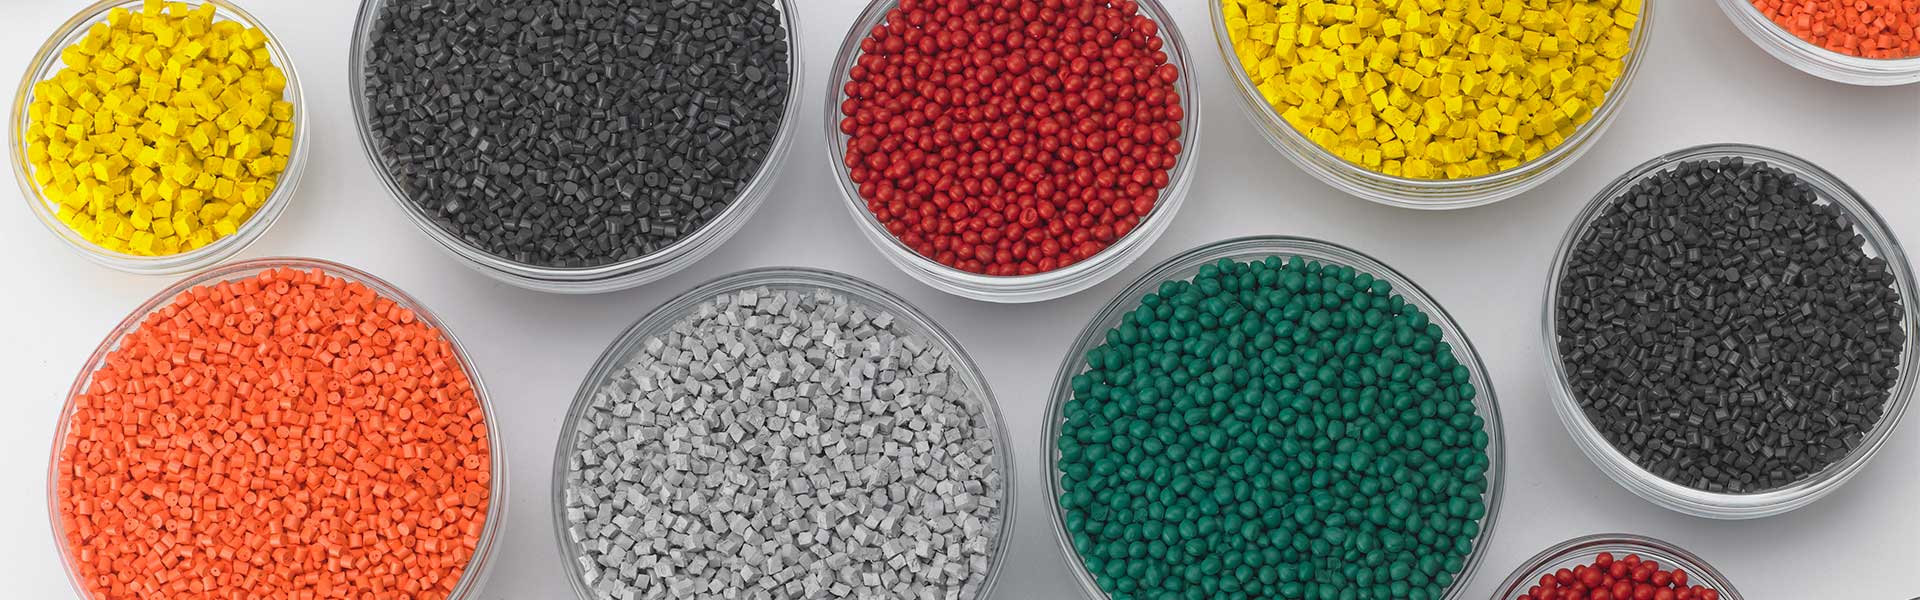 Plastic extrusion materials in a variety of colors